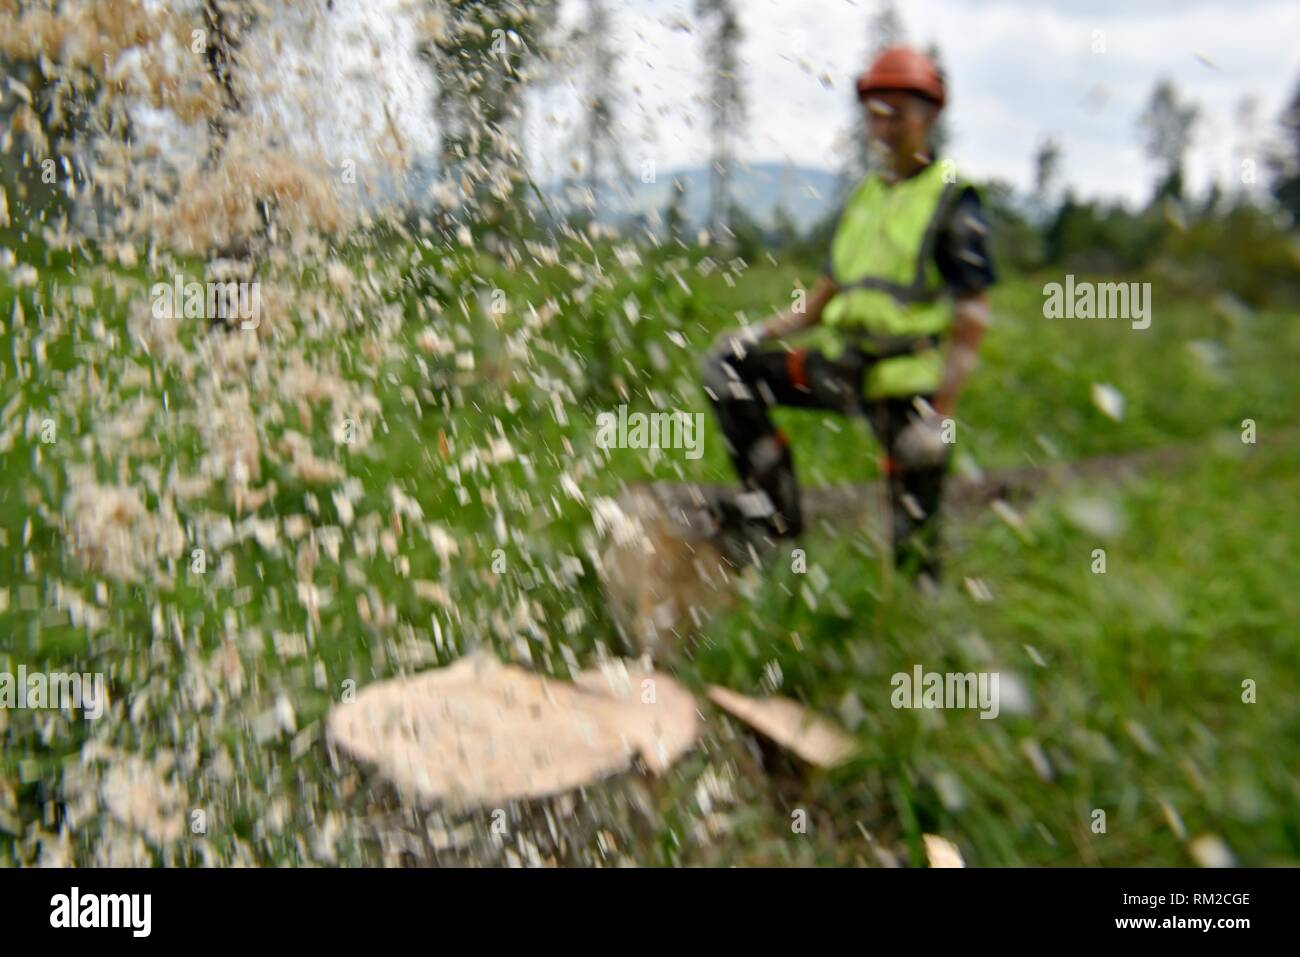 lumberjack at work, Chocholowska Valley, near Witow, Podhale Region, Polish Tatra mountains, Malopolska Province (Lesser Poland), Poland, Central - Stock Image